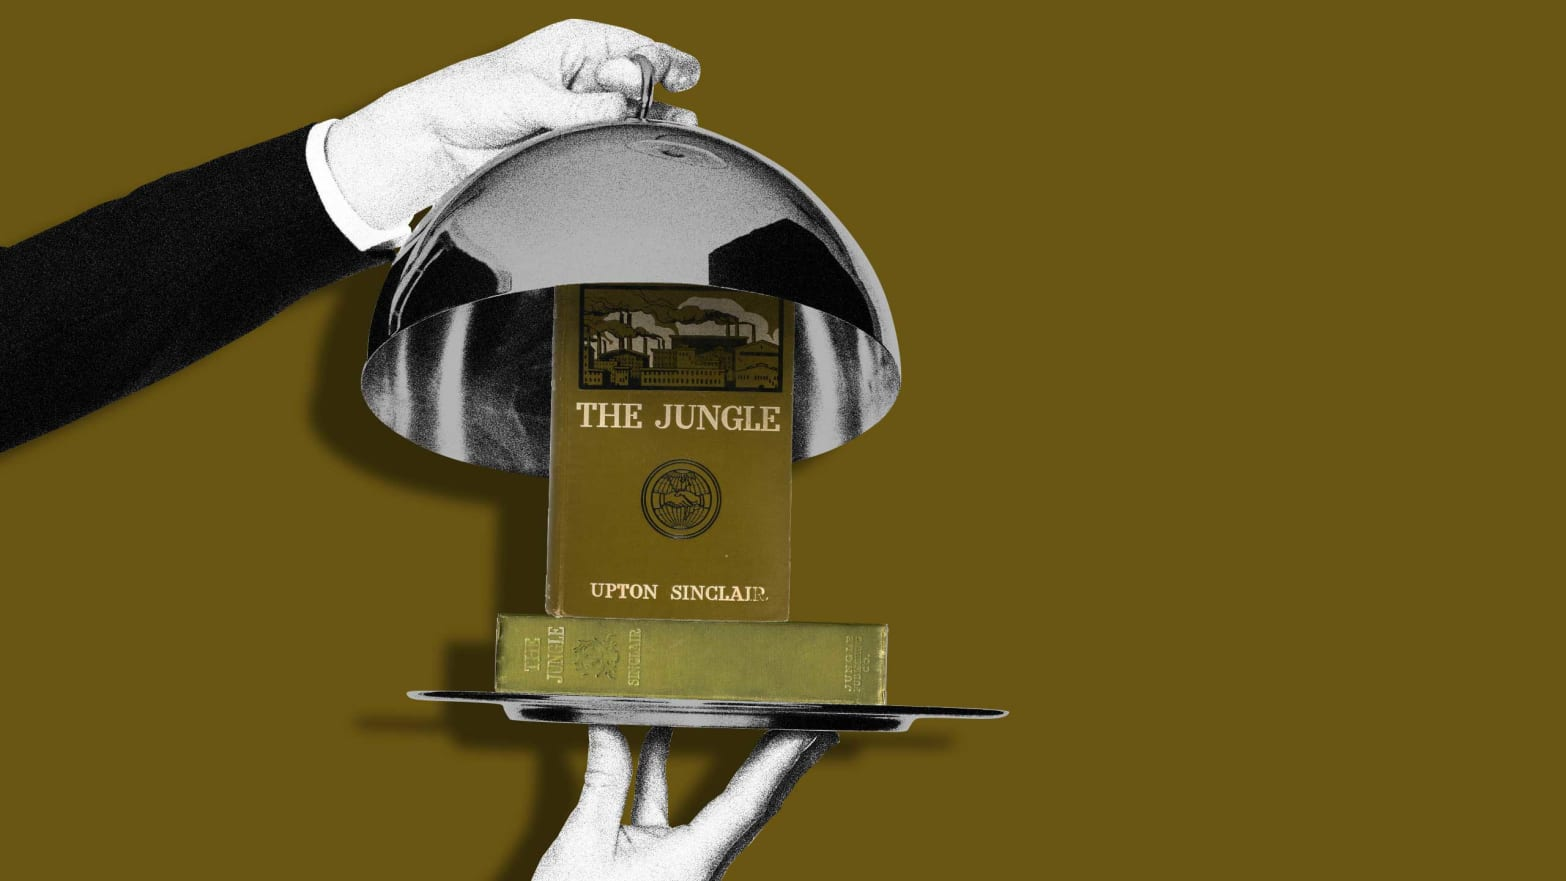 waiter opening silverware plate to reveal upton sinclair the jungle deborah blum poison squad